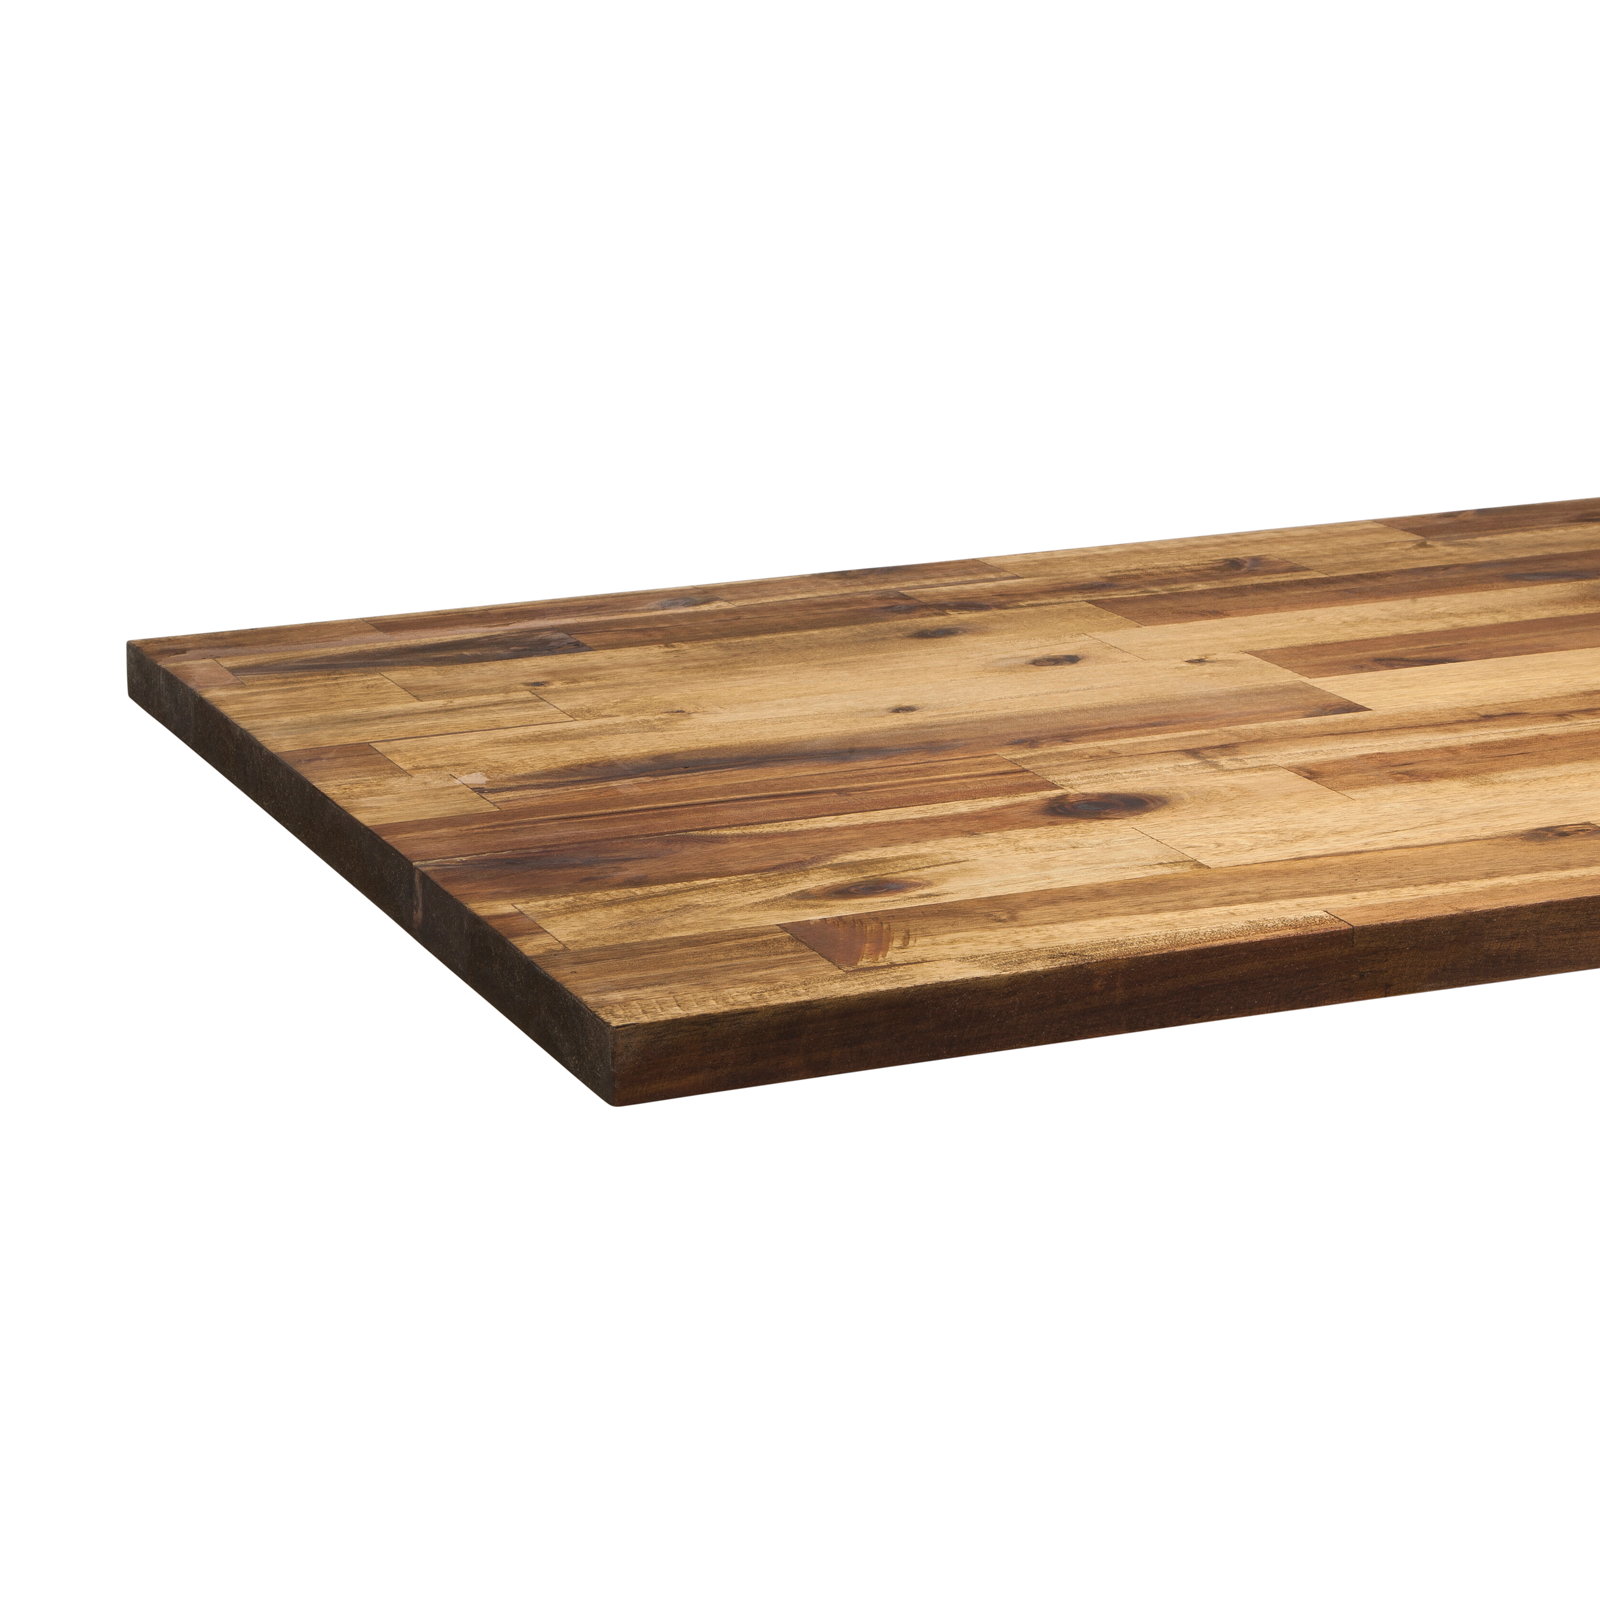 2200 x 600 x 26mm Acacia Solid Oiled Hardwood Project Panel